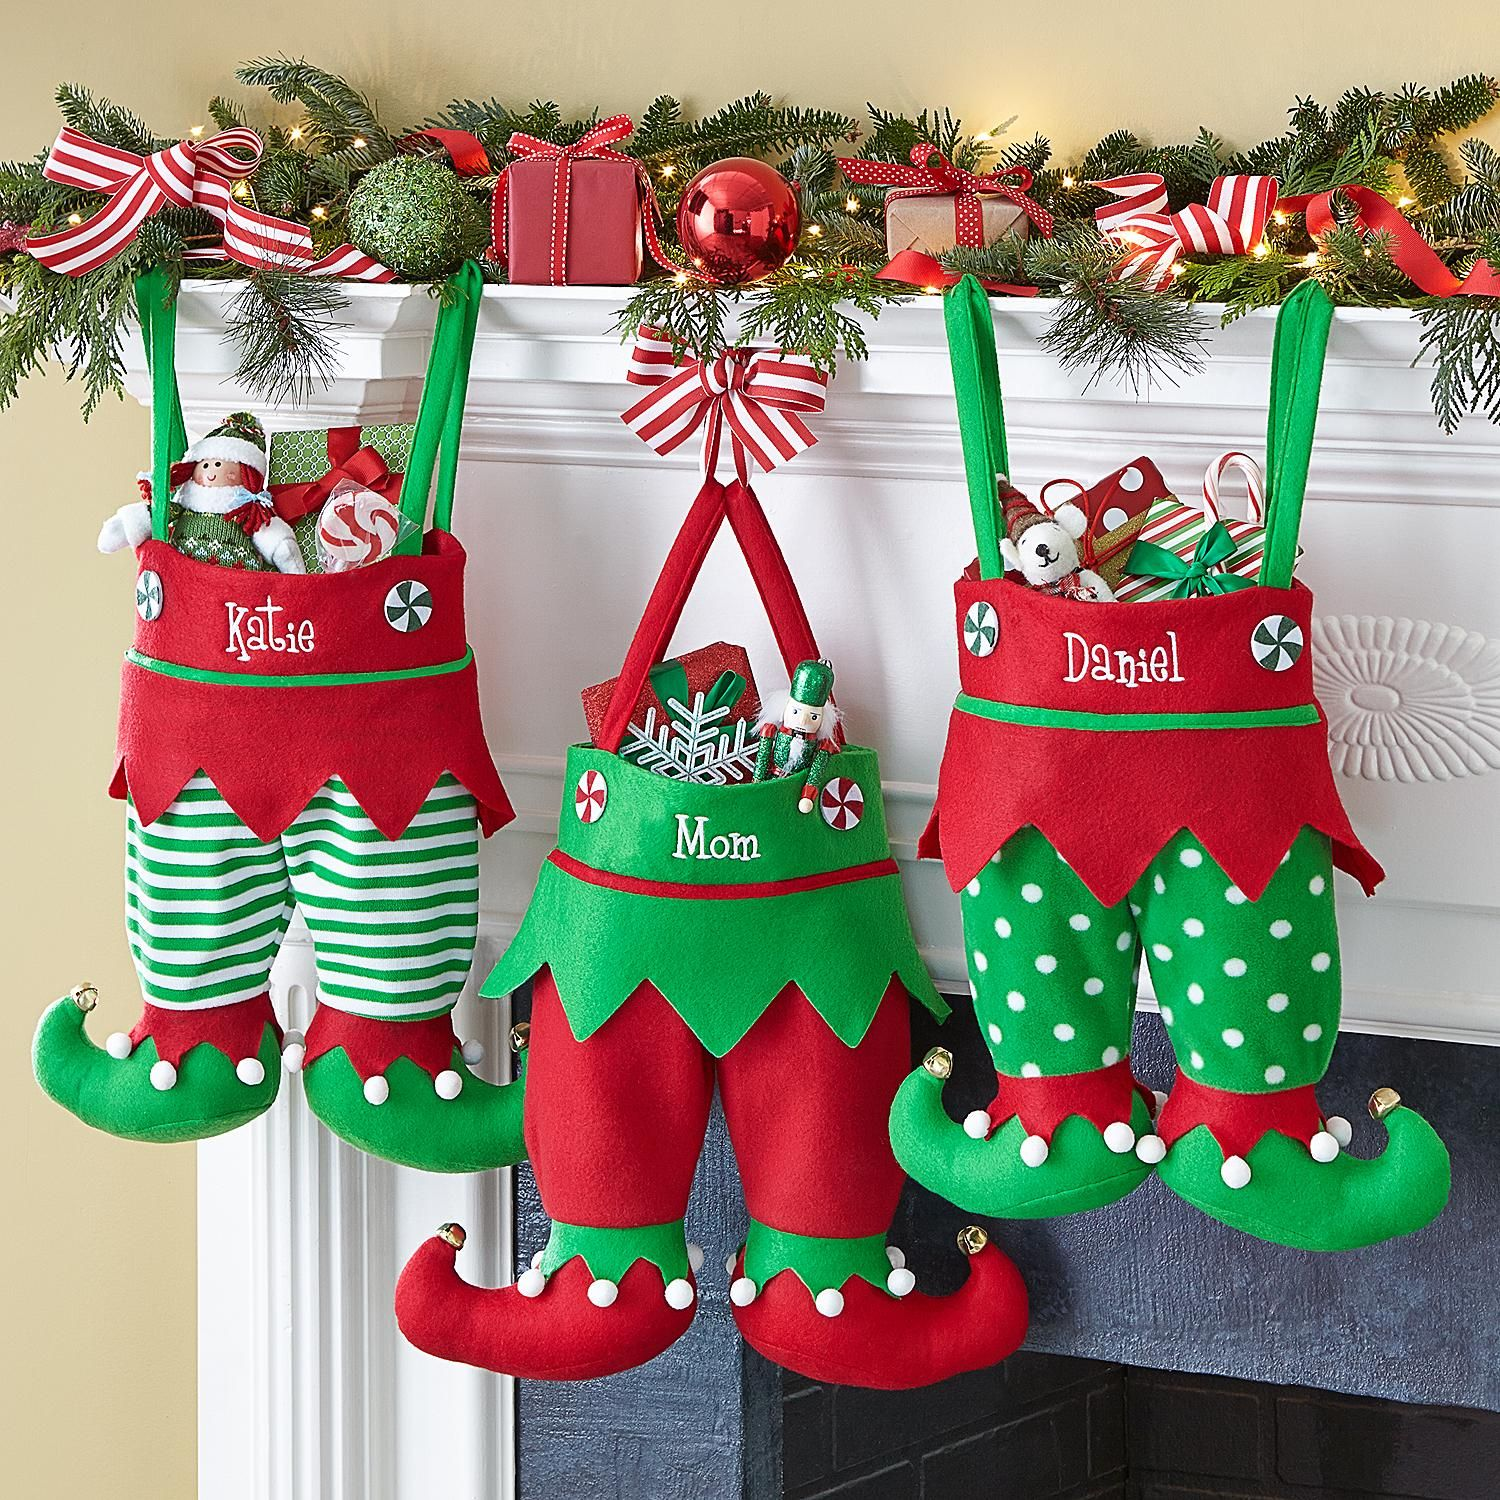 Send Jingle Bell Elf Pants Stocking And Other Personalized Gifts At Personal Creations